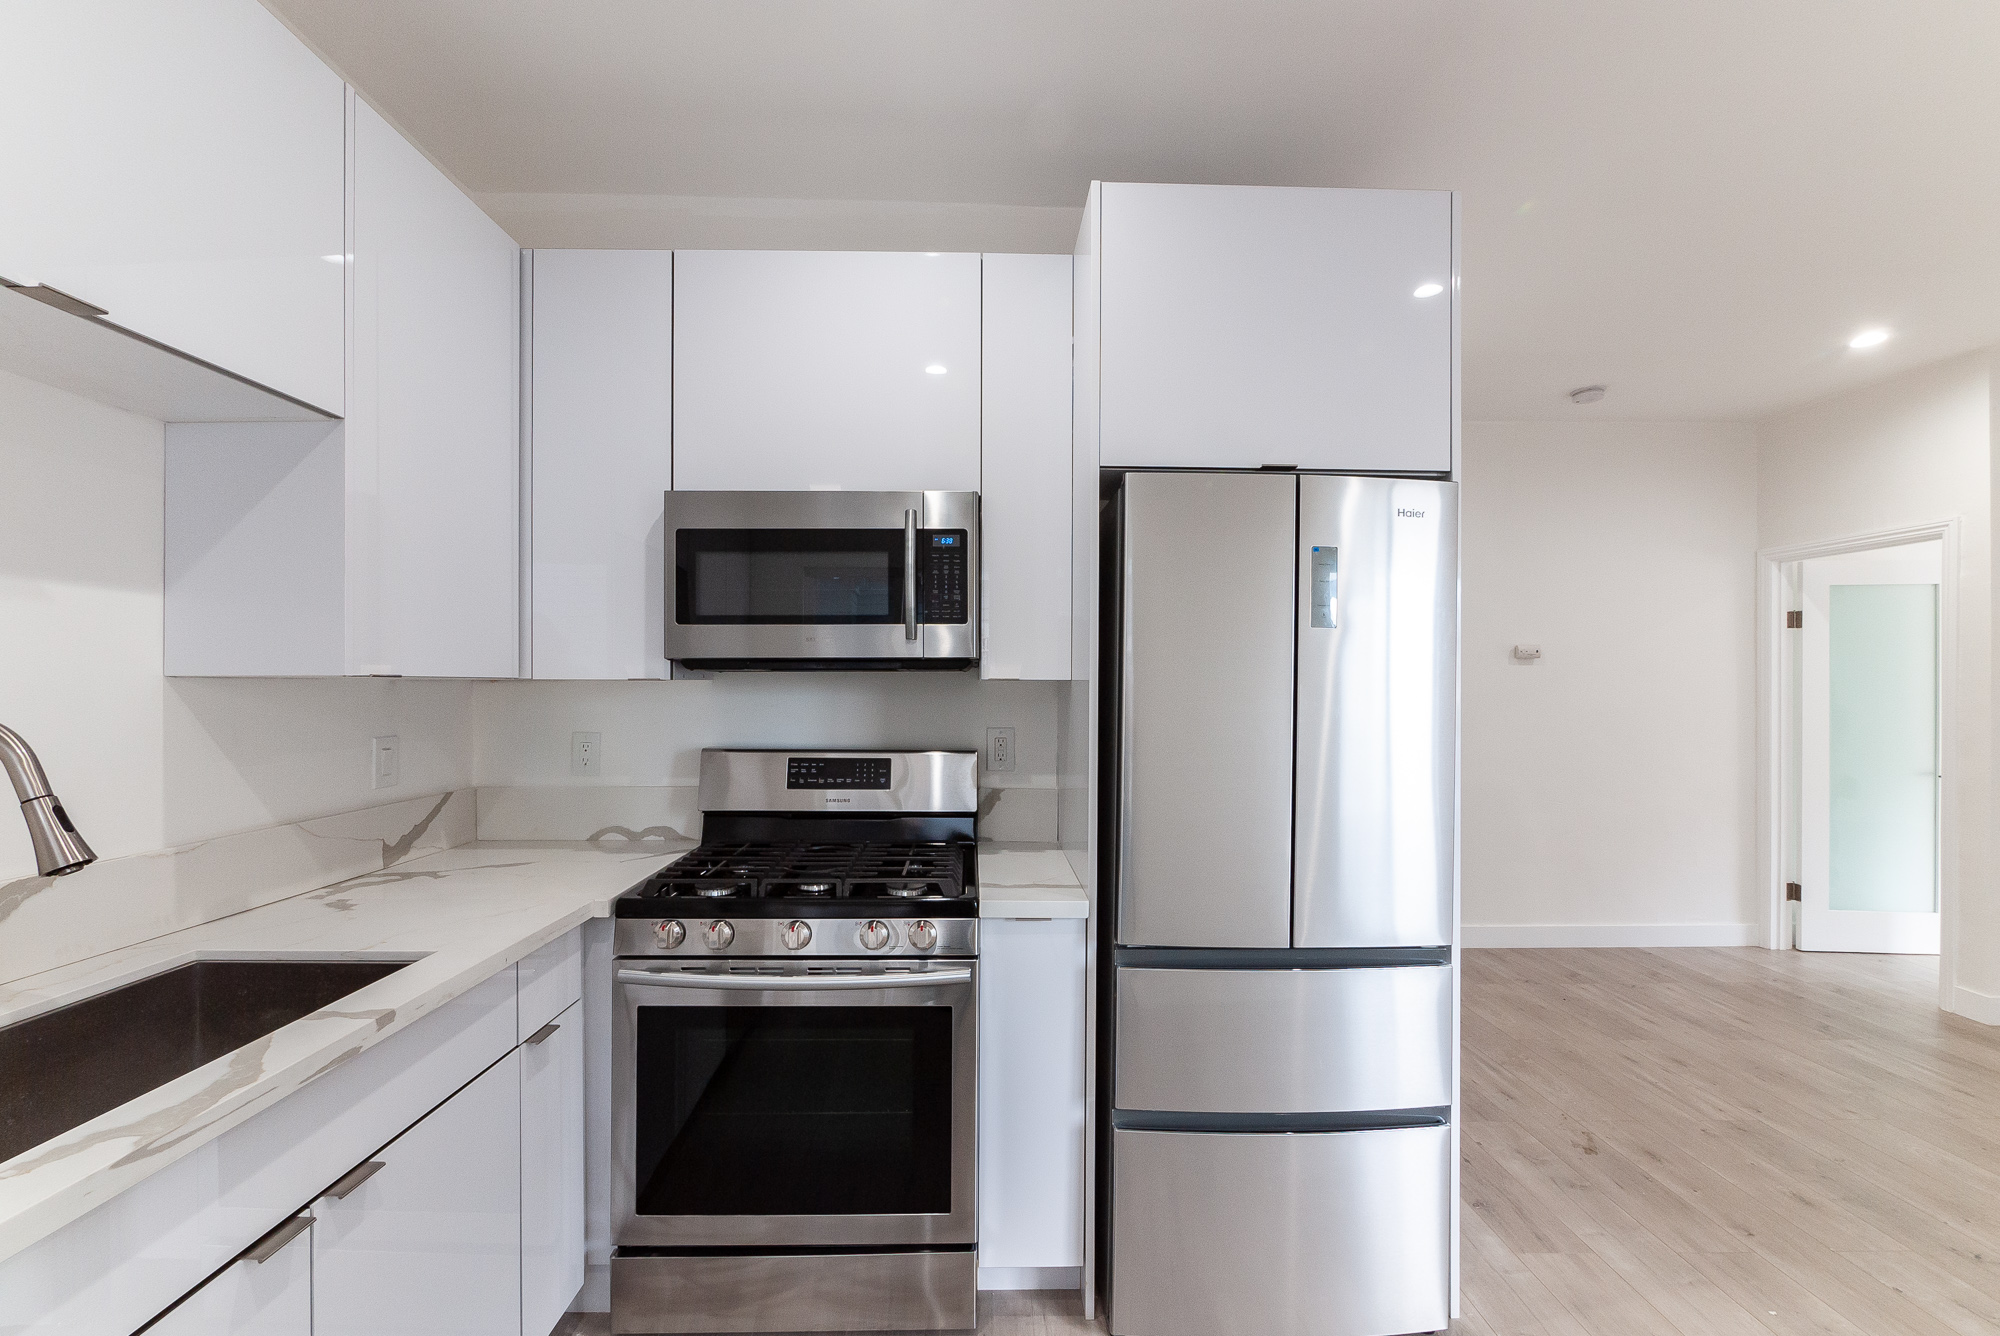 Remodeled 1 Bed In K-town| New Everything! | AC Unit Included | Short Trip To All Your Ktown Faves!